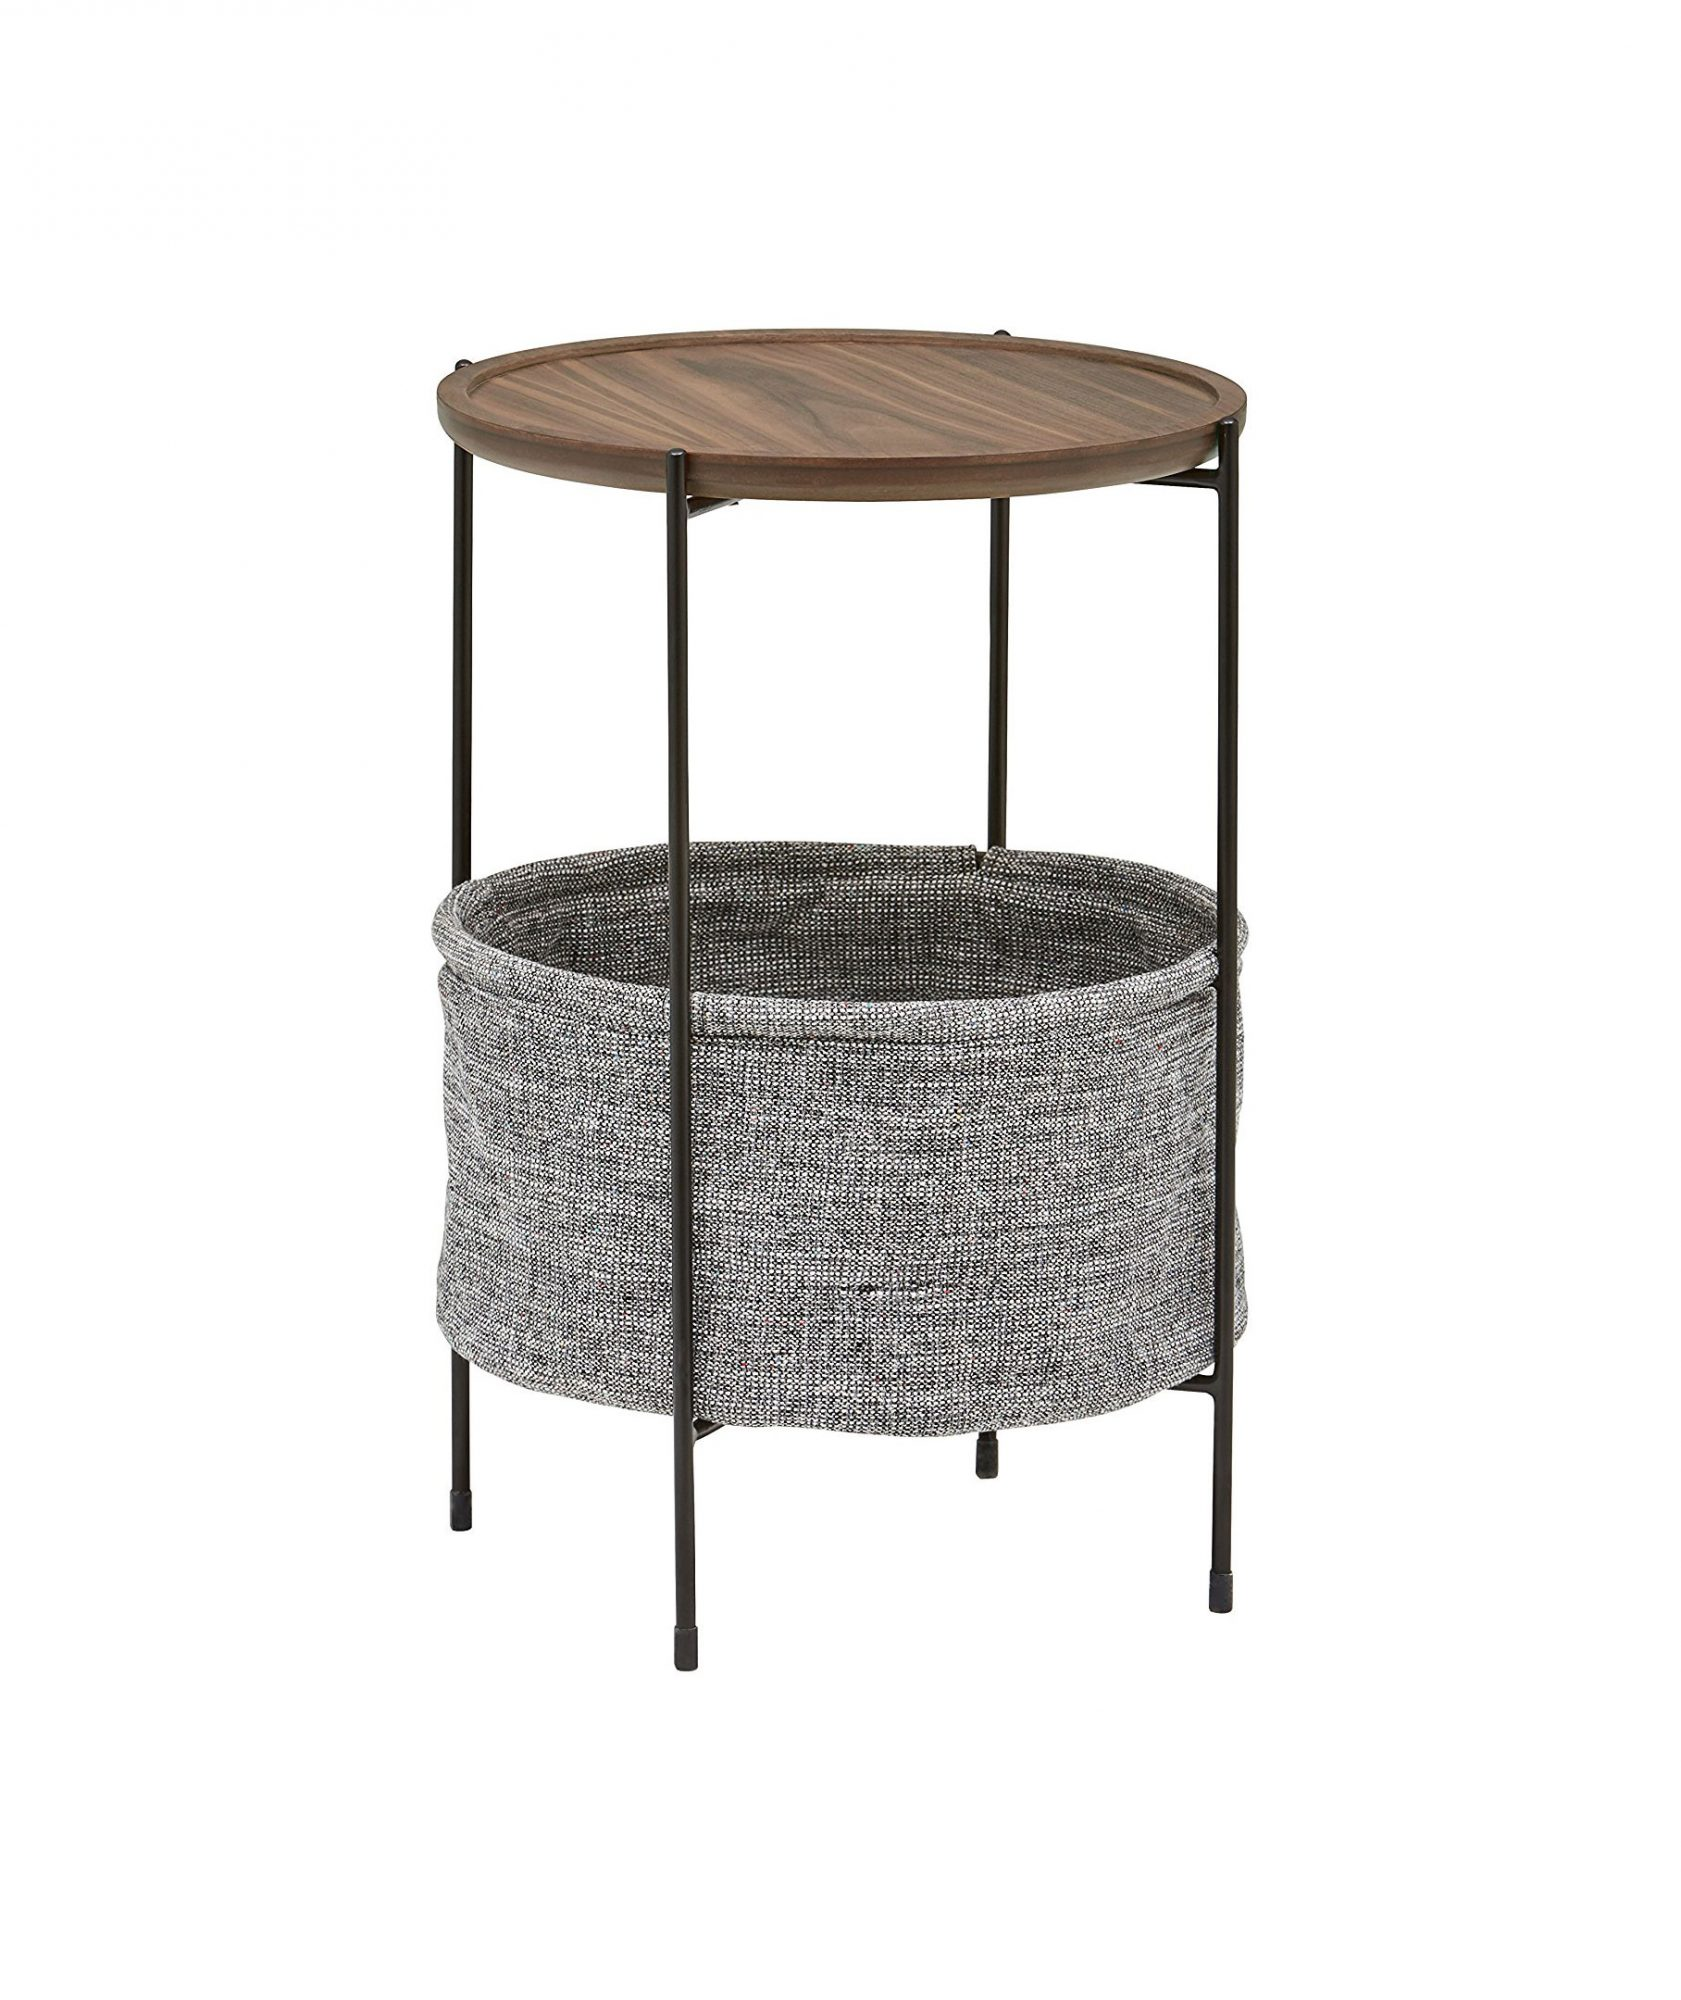 Amazon Prime Day Side Table